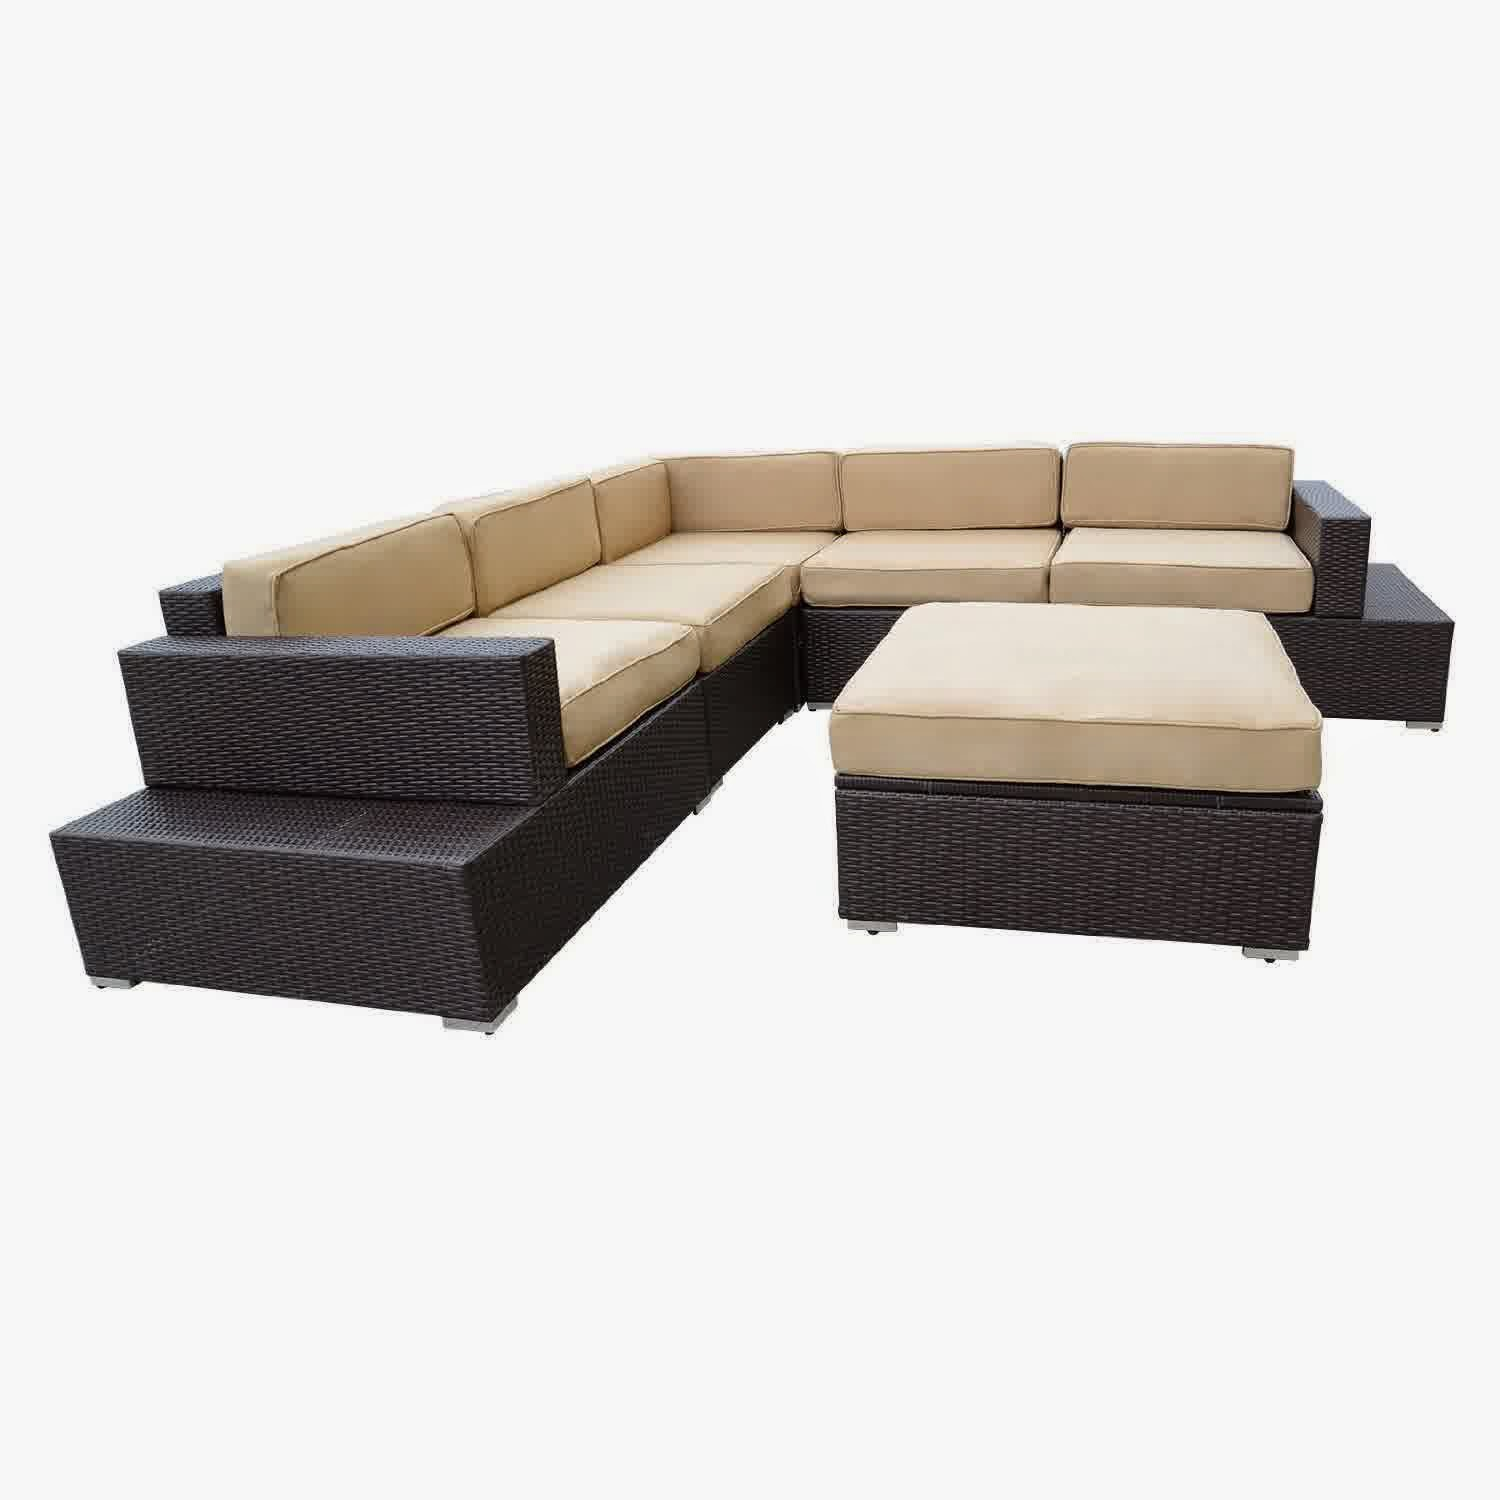 Discount 50% Outdoor Patio Rattan Sofa Wicker Sectional Furniture Sofa ...